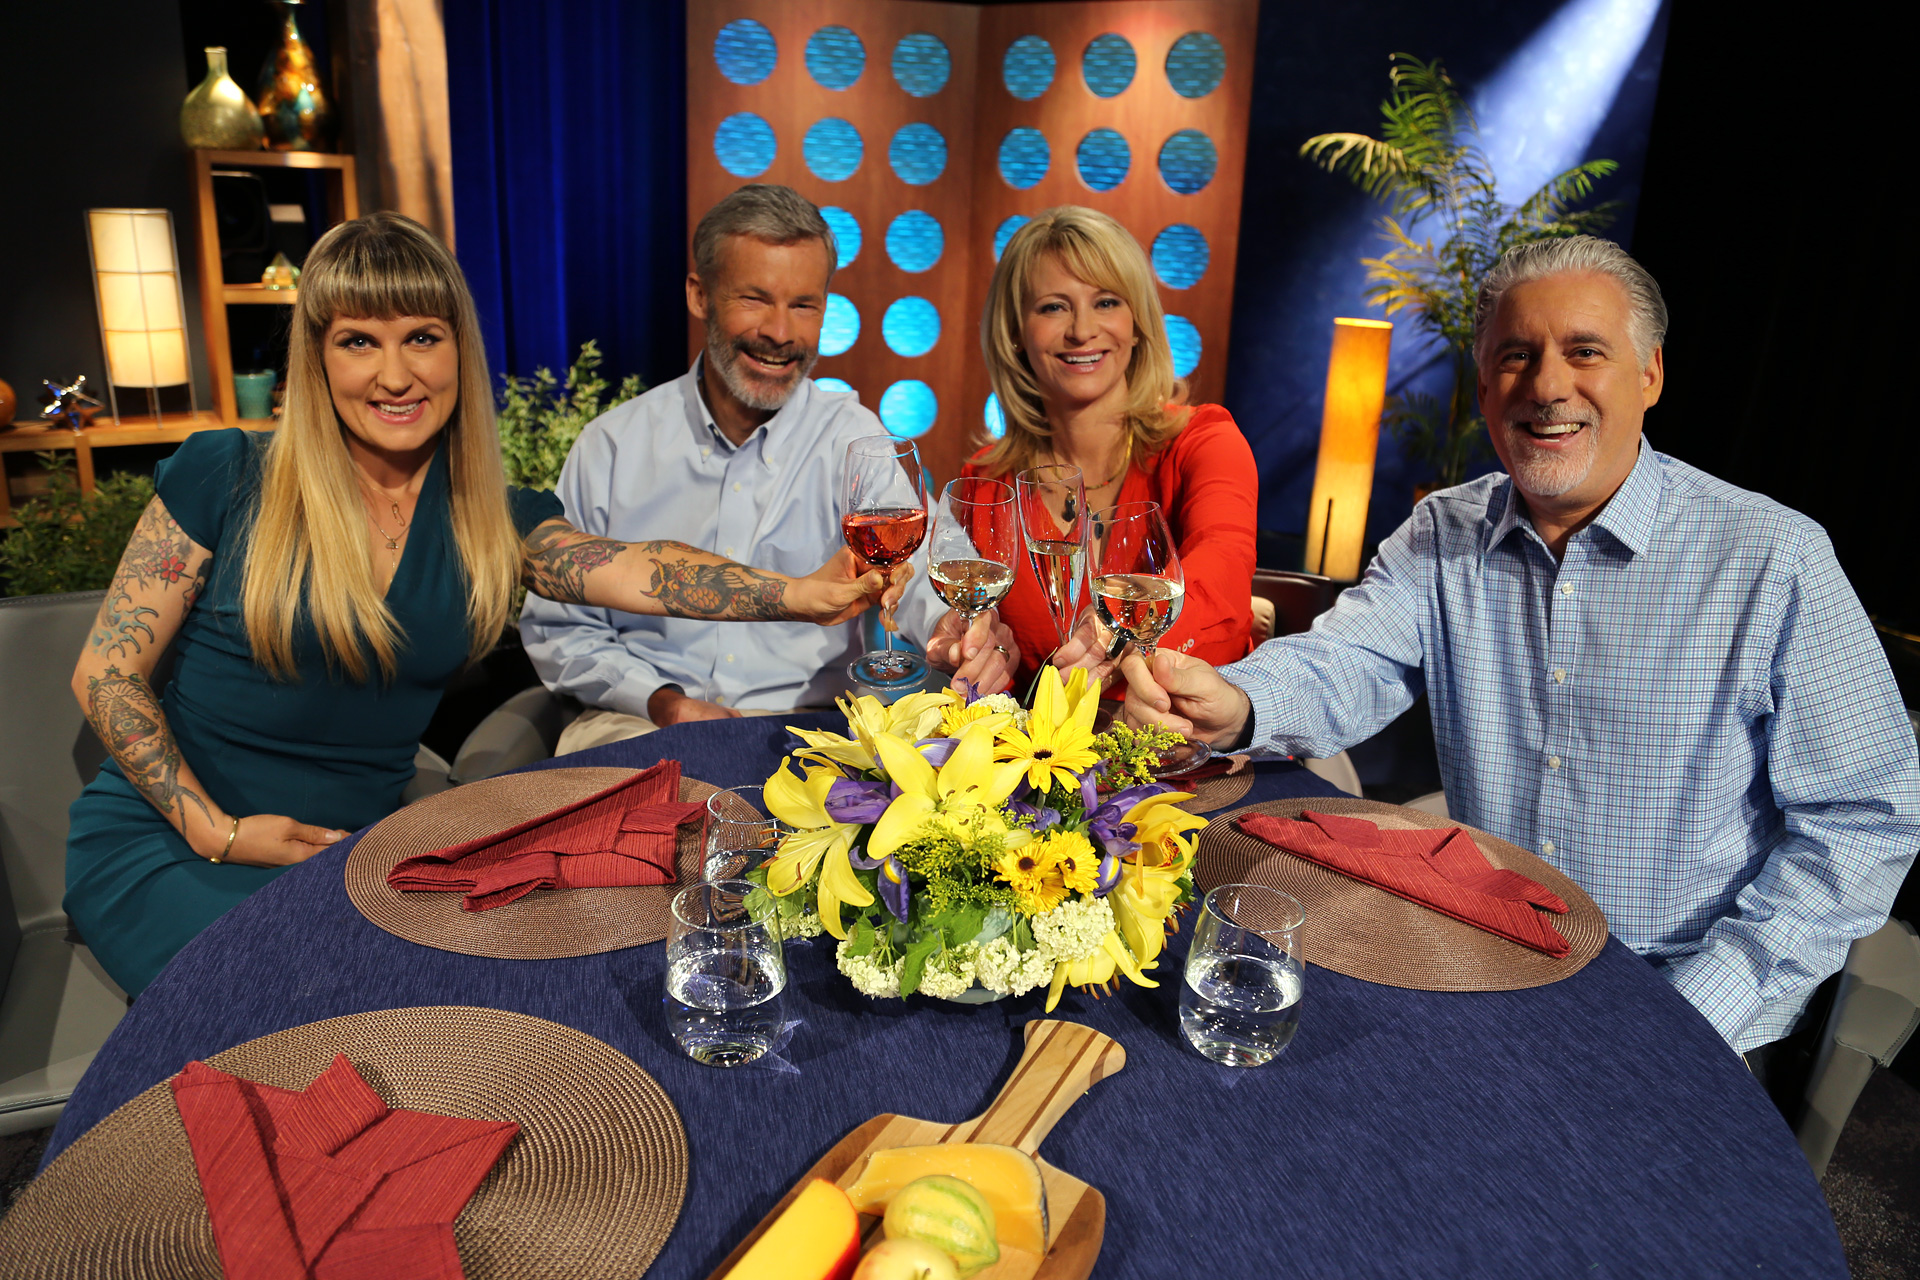 Host Leslie Sbrocco and guests on the set of the episode 11 of season 11.